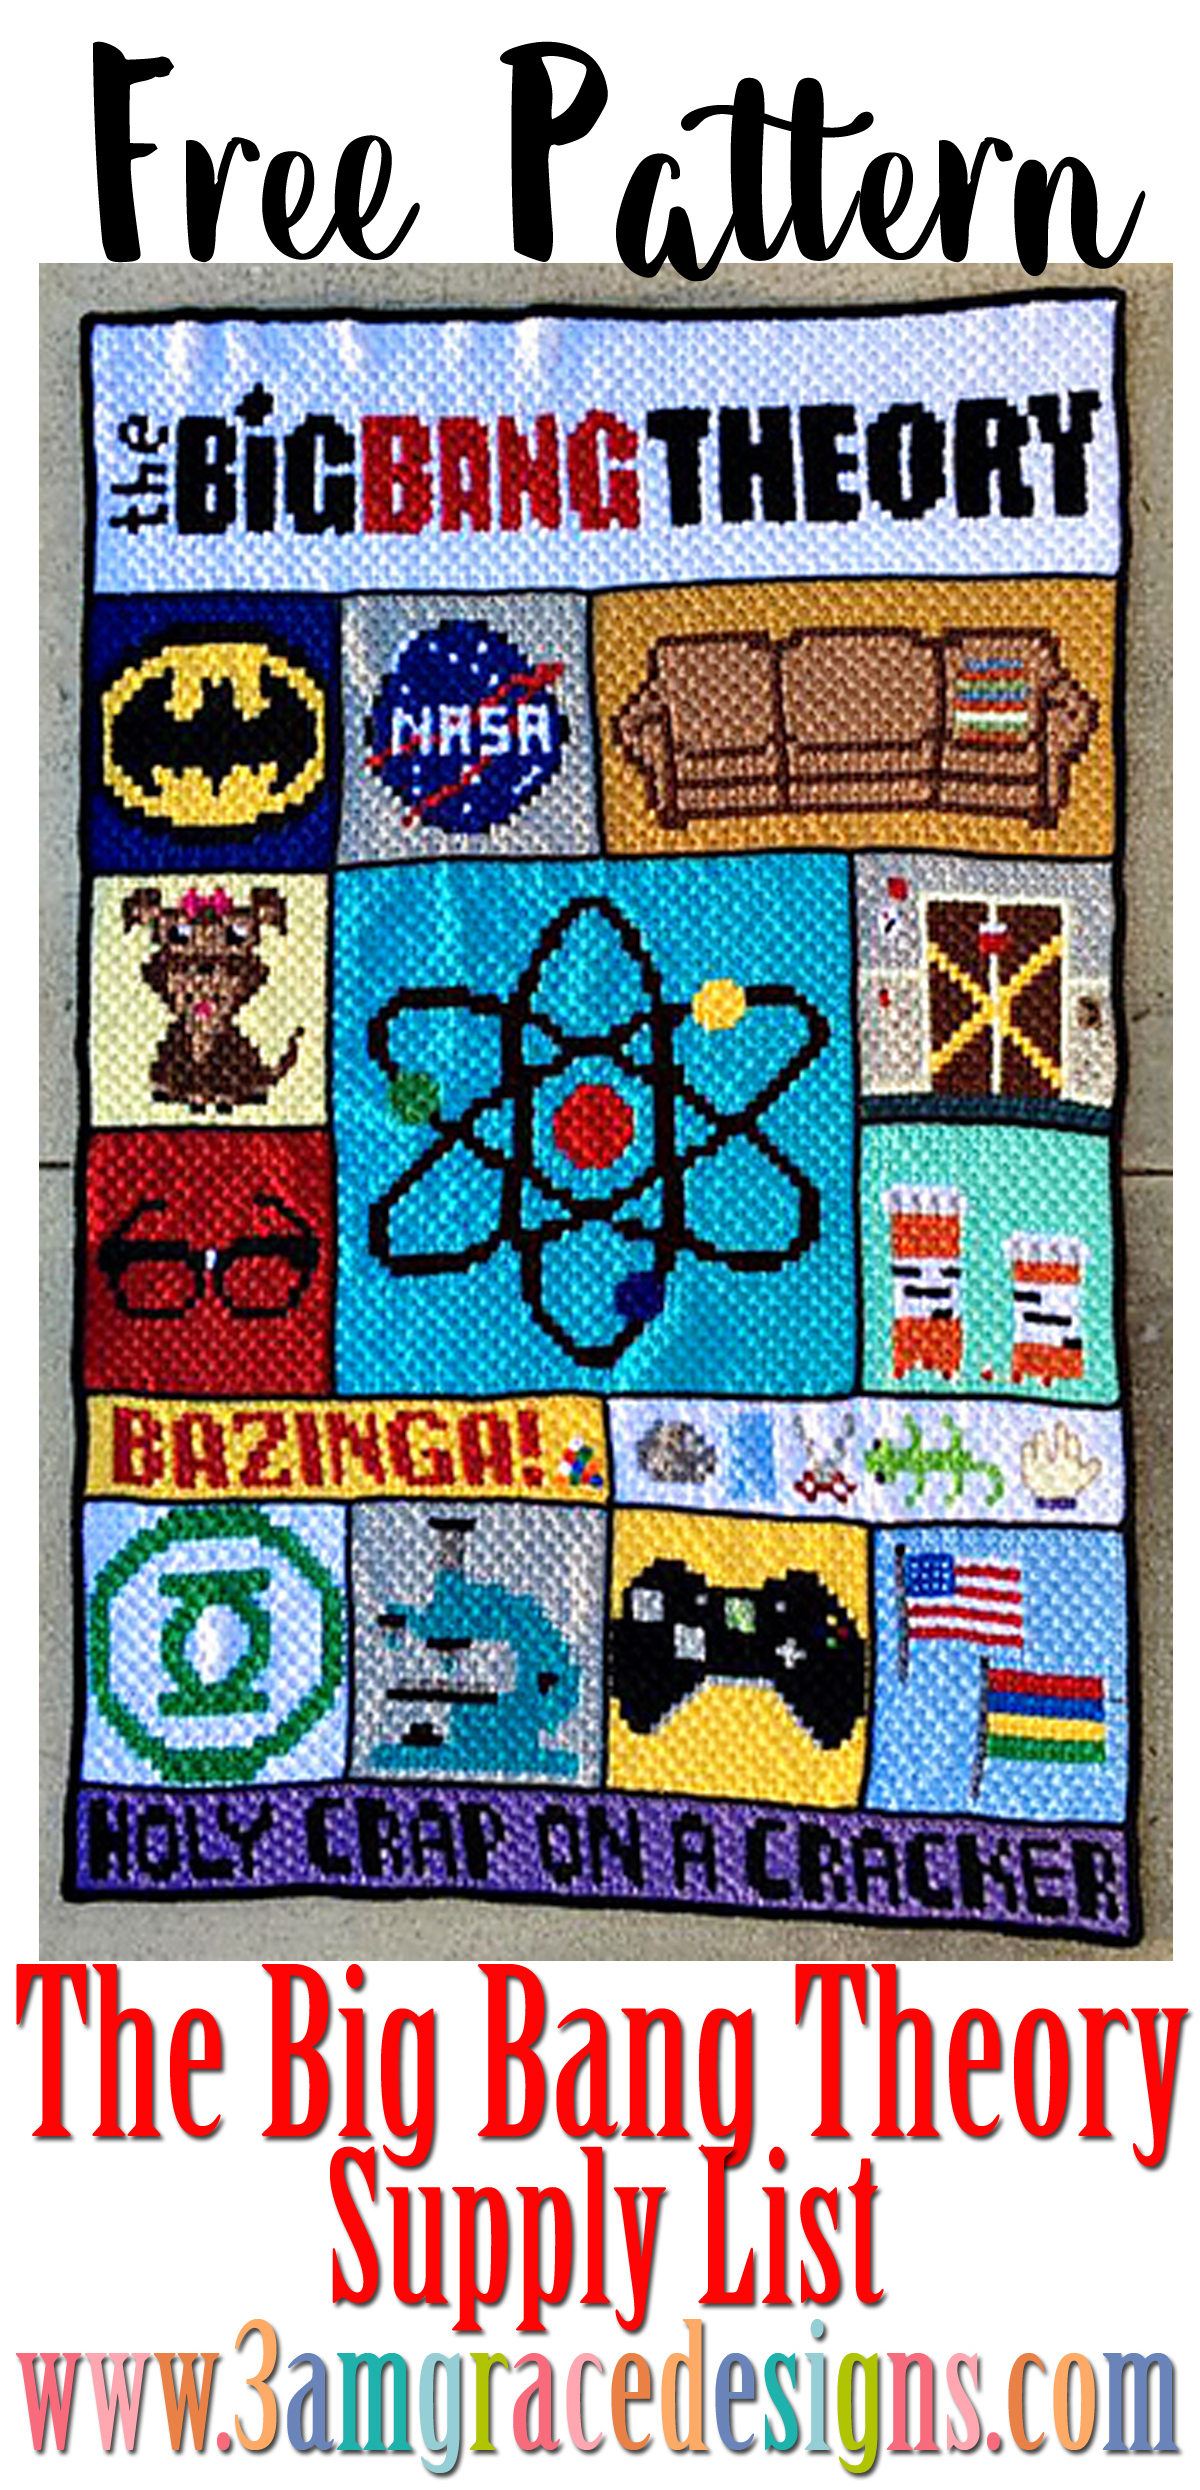 bib bang theory crochet afghan spply list